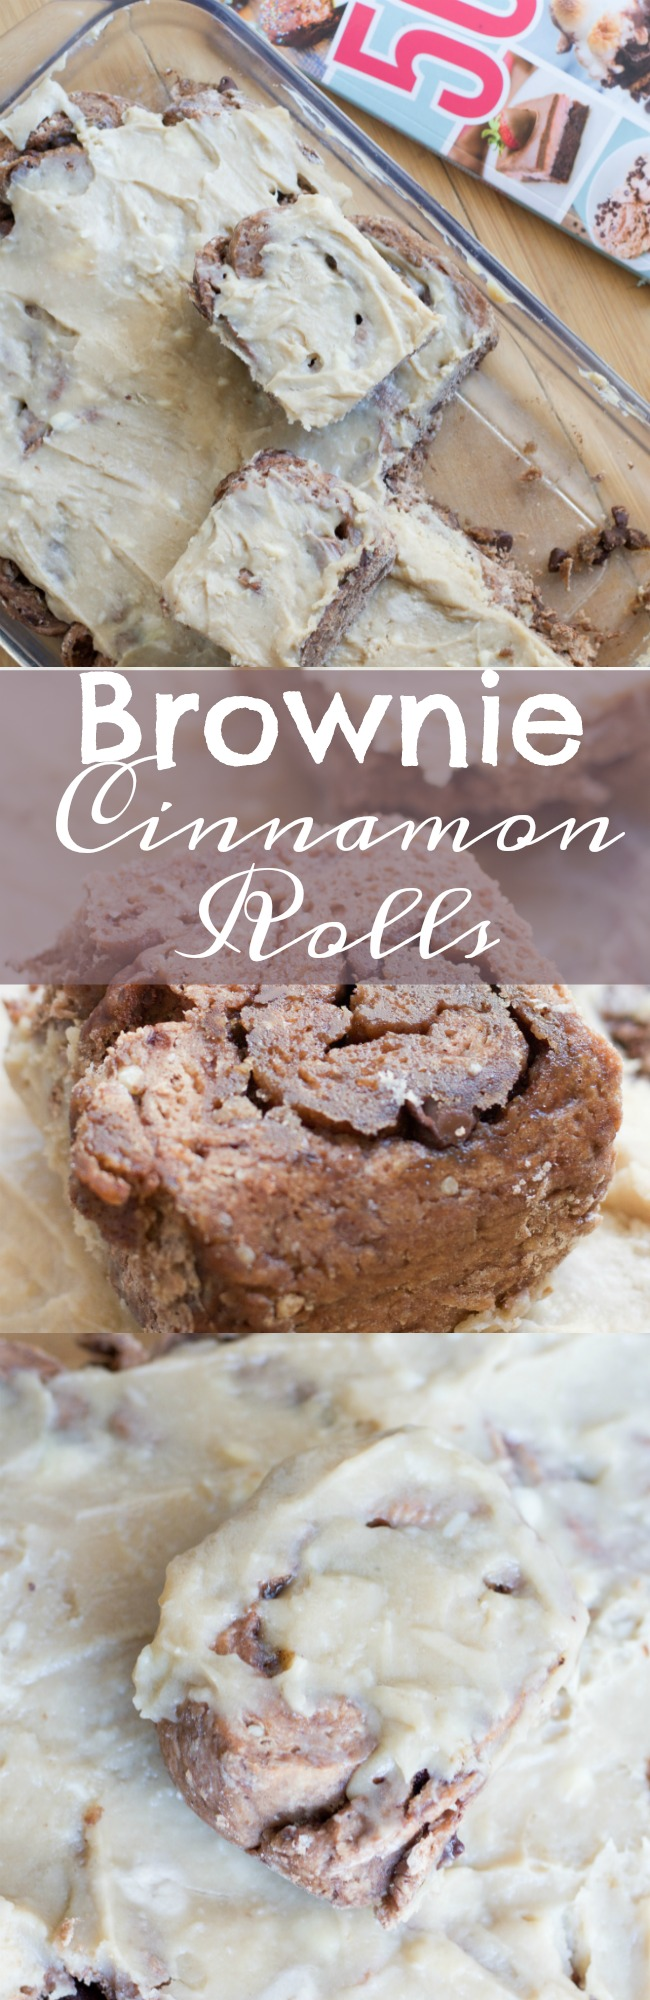 These chocolate brownie cinnamon rolls are TO DIE for. via @clarkscondensed